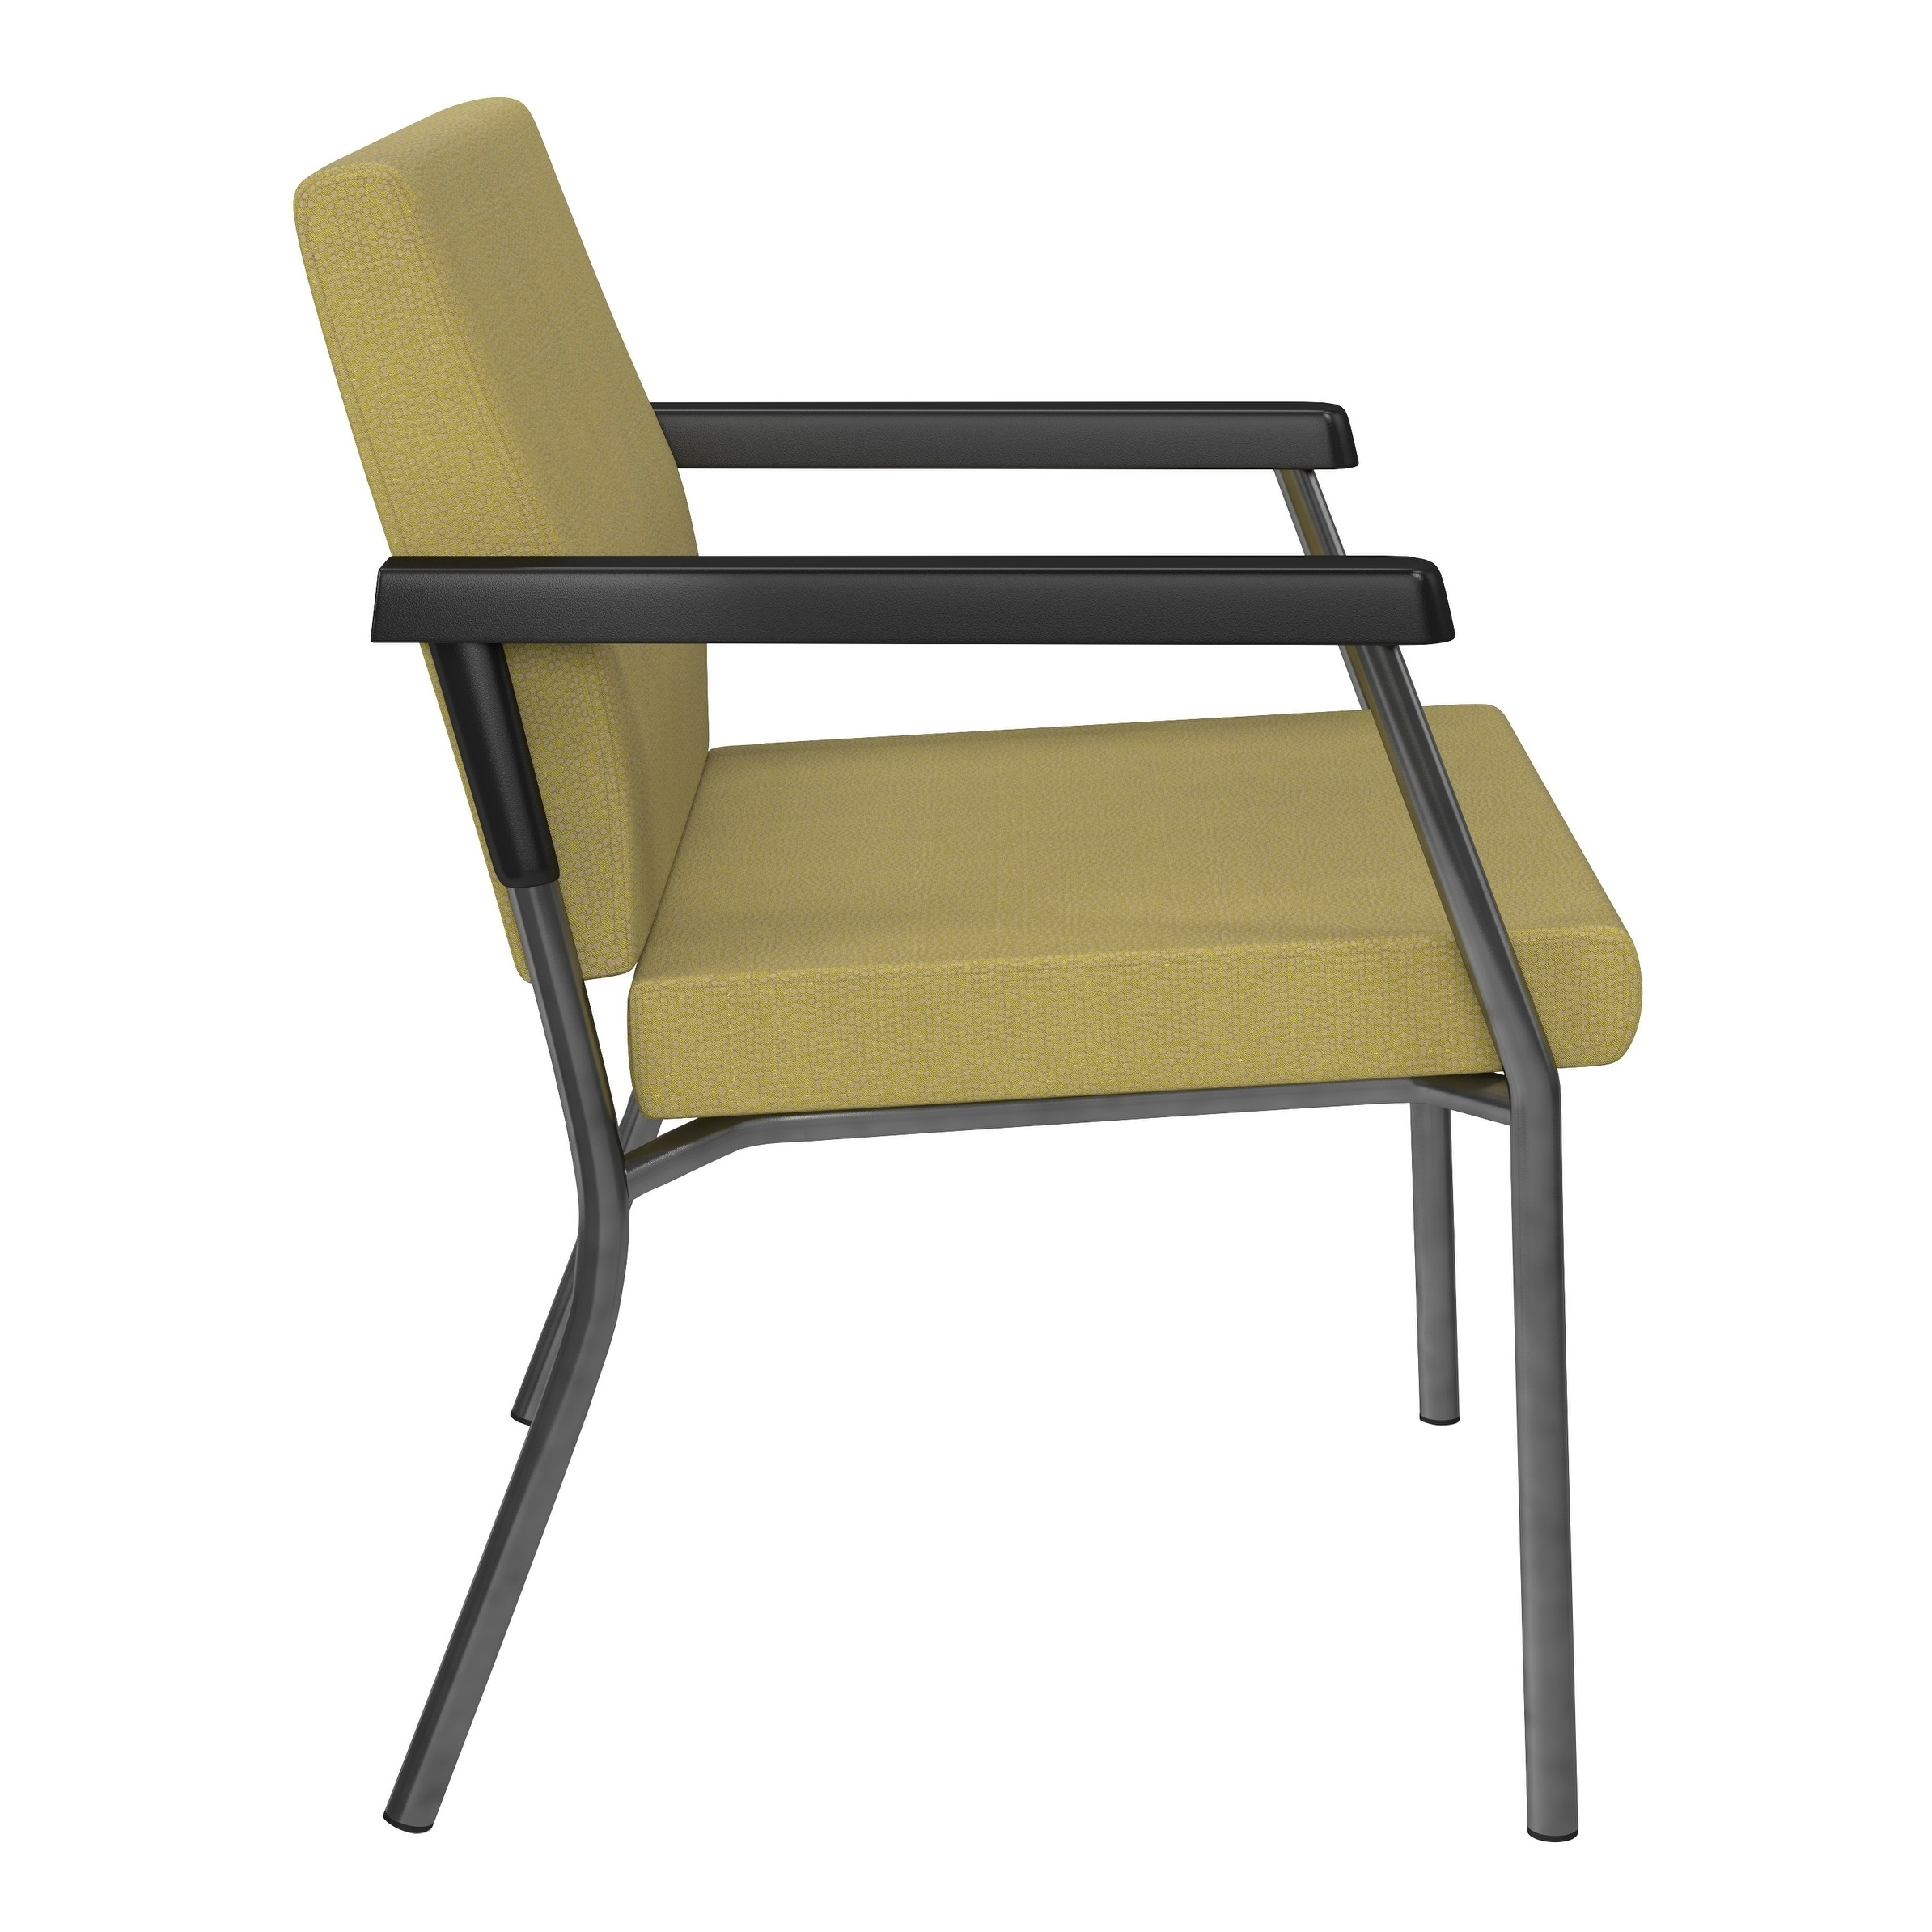 Shop Bariatric Big & Tall Chair - Overstock - 33